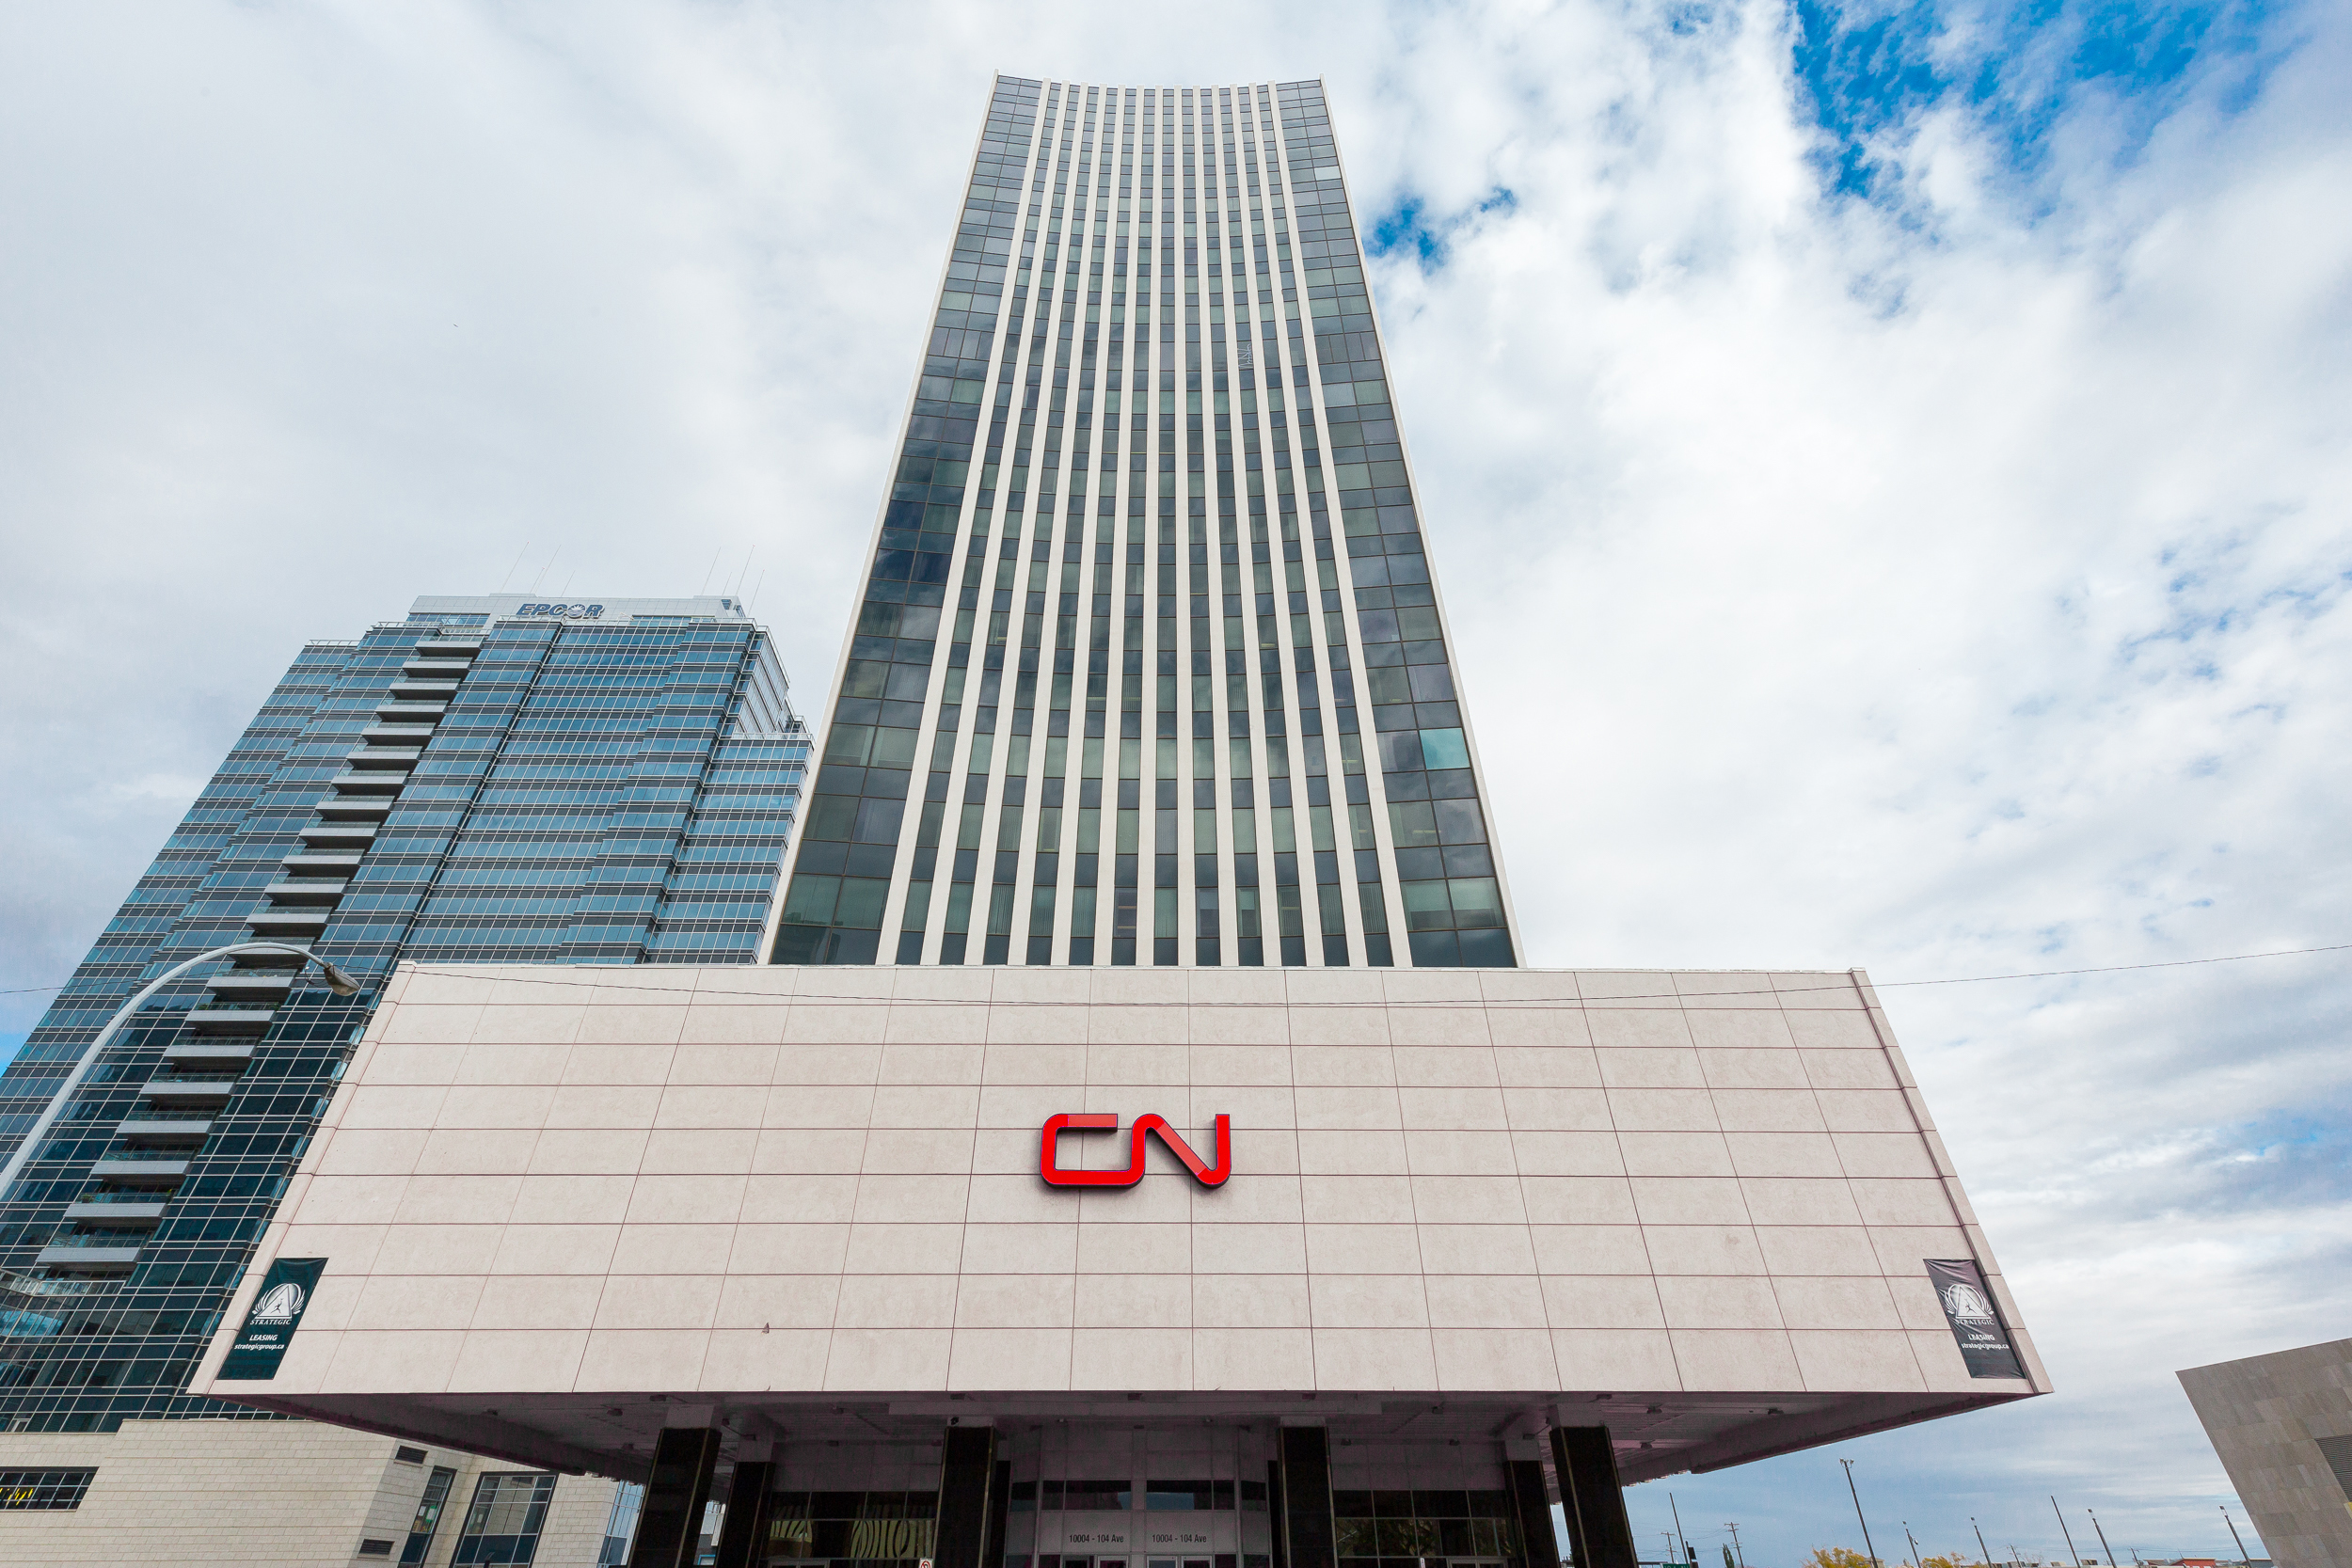 1200 CN Tower 10004 104 Avenue NW